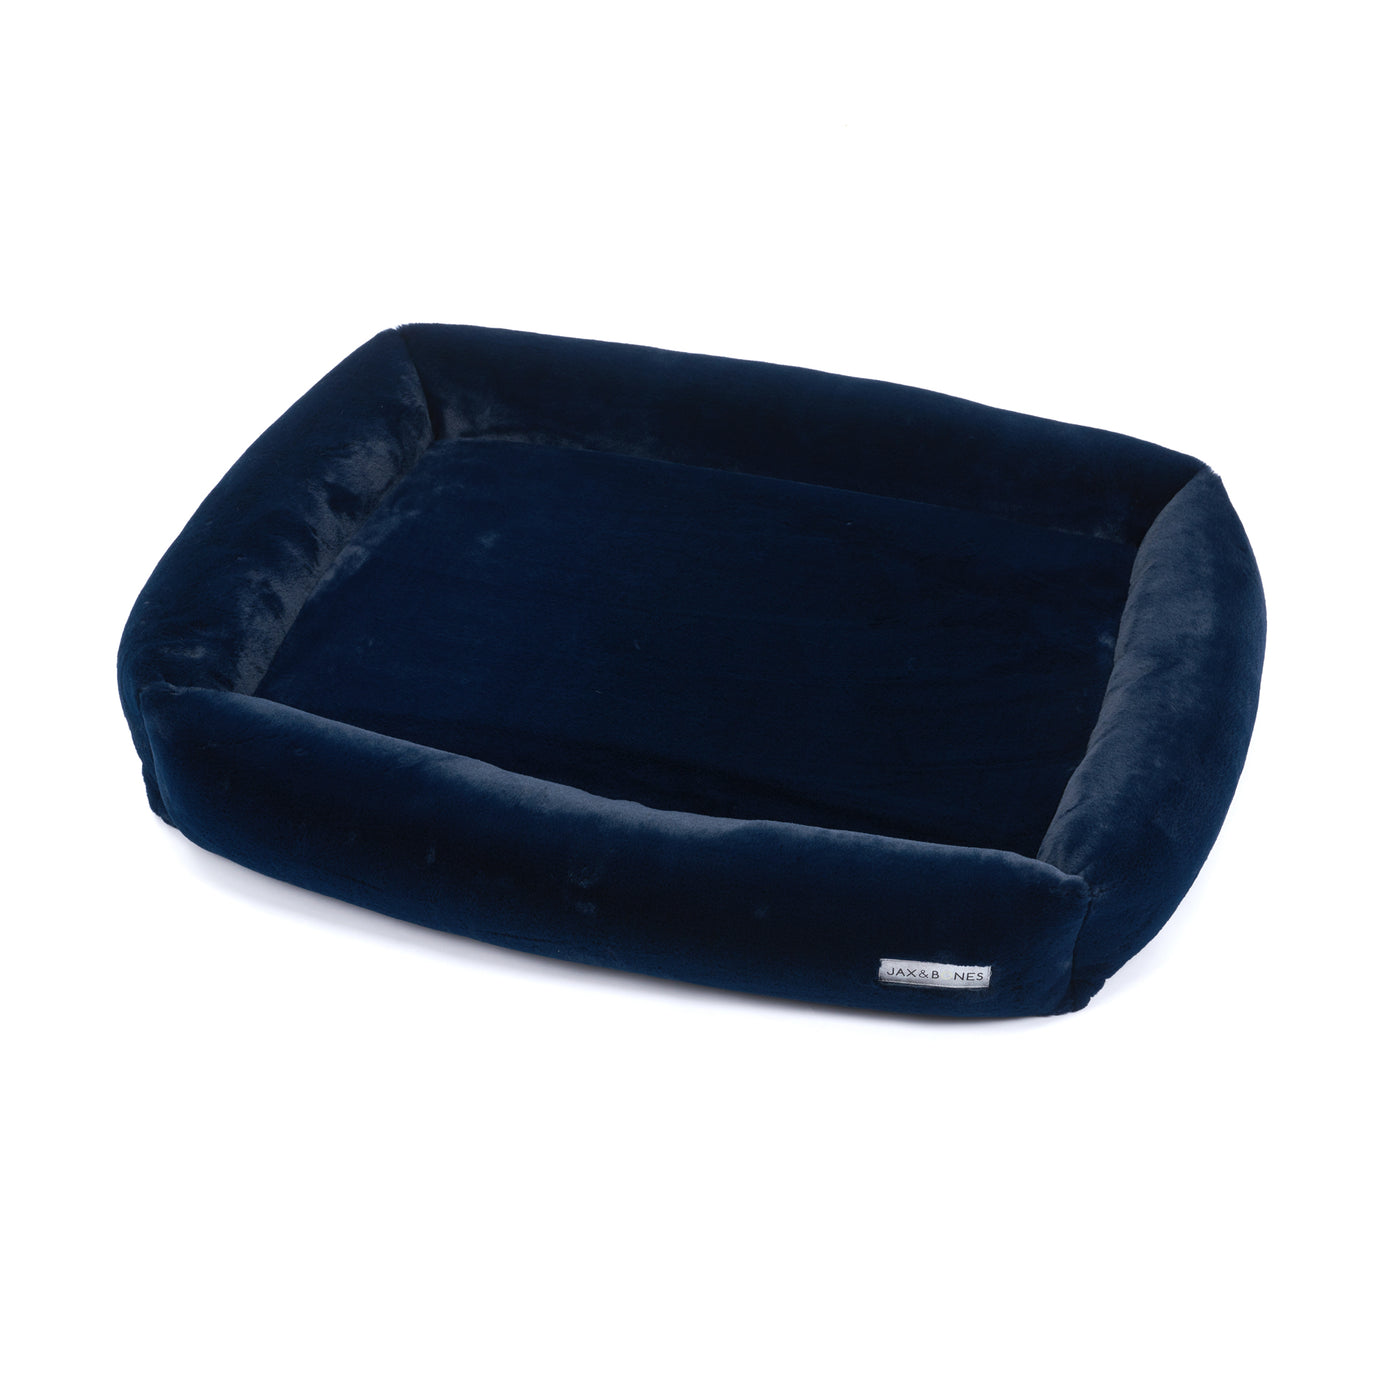 Memory Foam Mink Navy Cuddler Bed